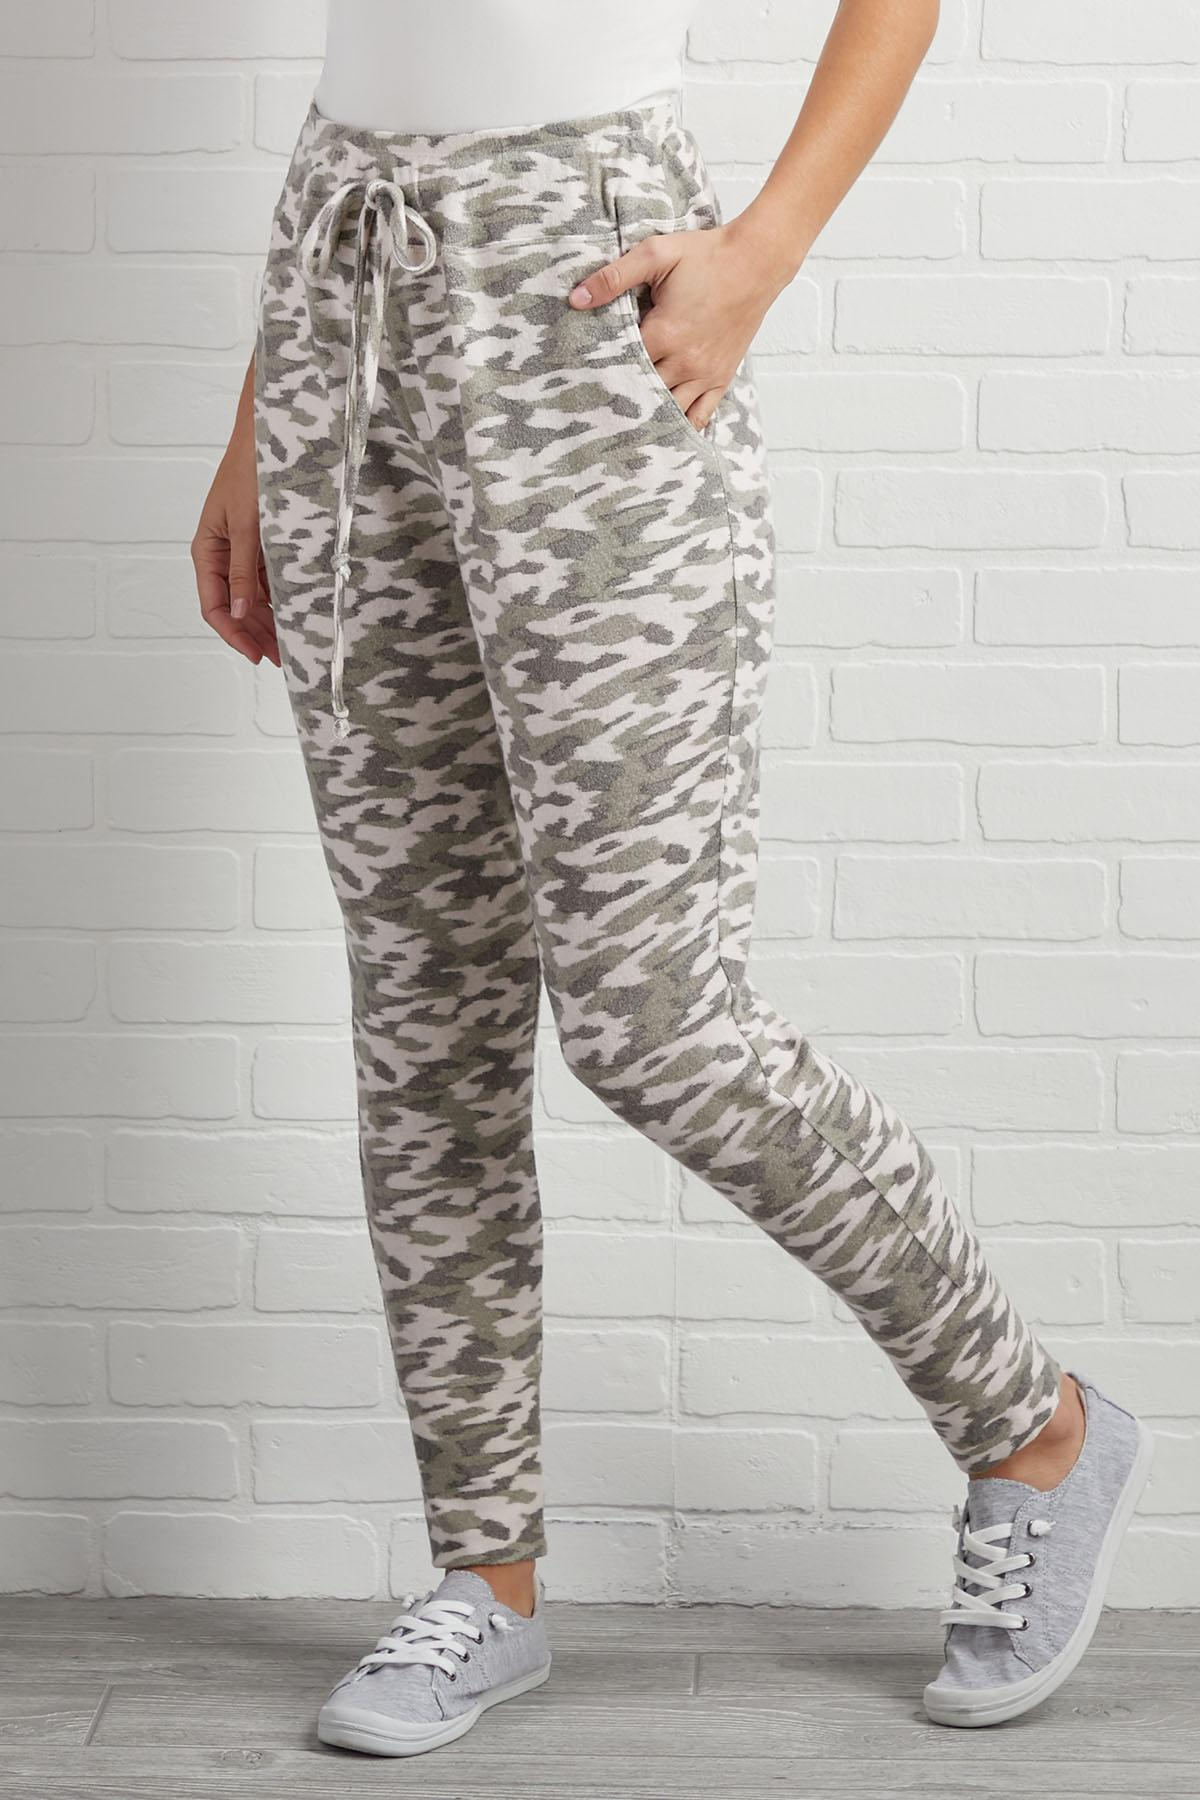 Incognito Mode Joggers